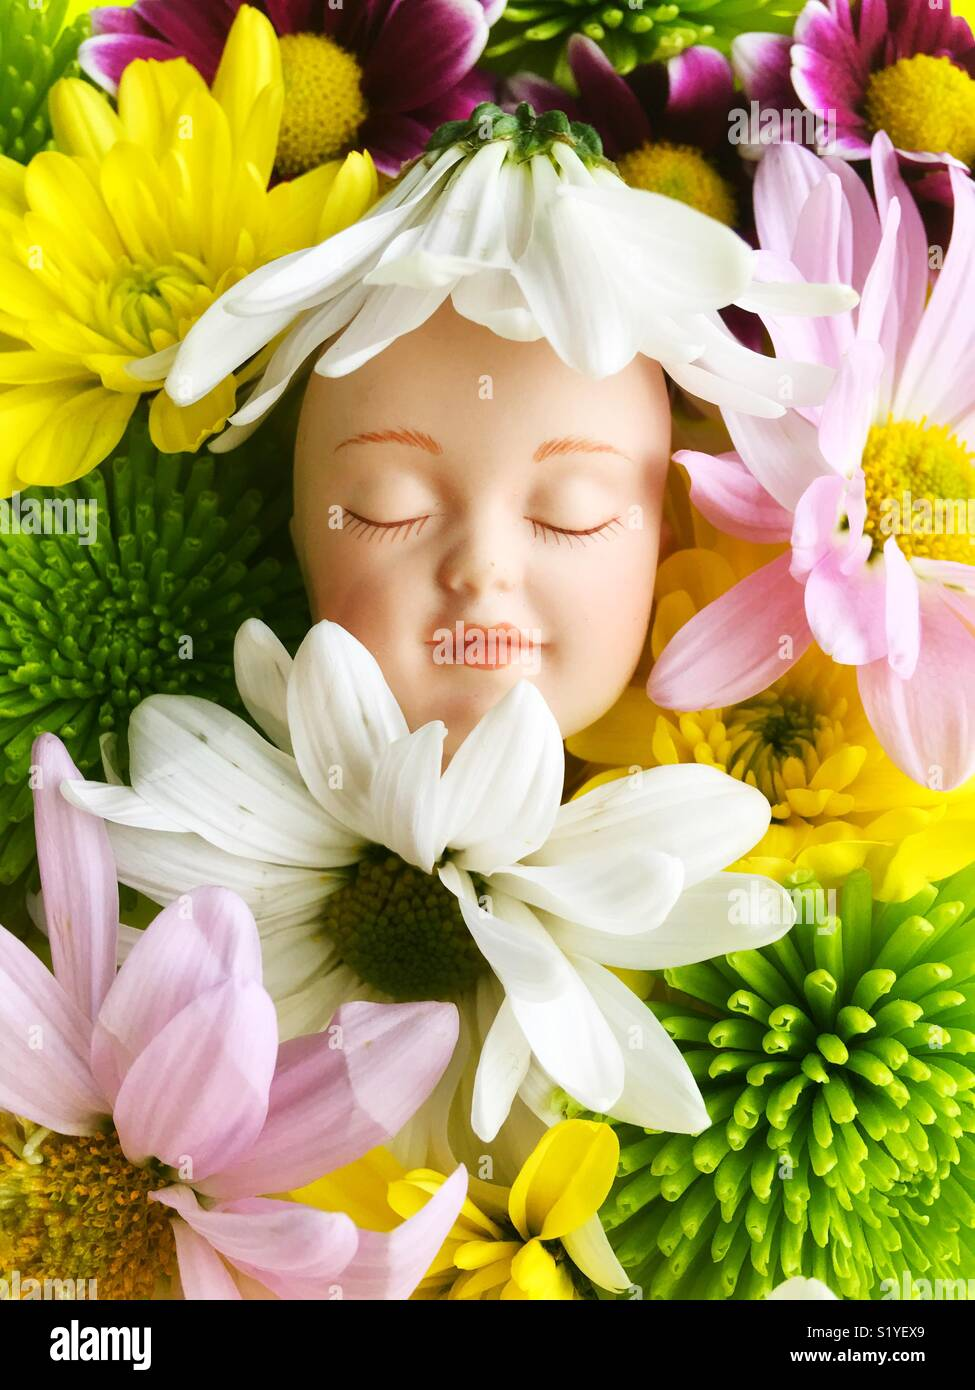 Contented, sleeping doll face in a bed of flowers. - Stock Image